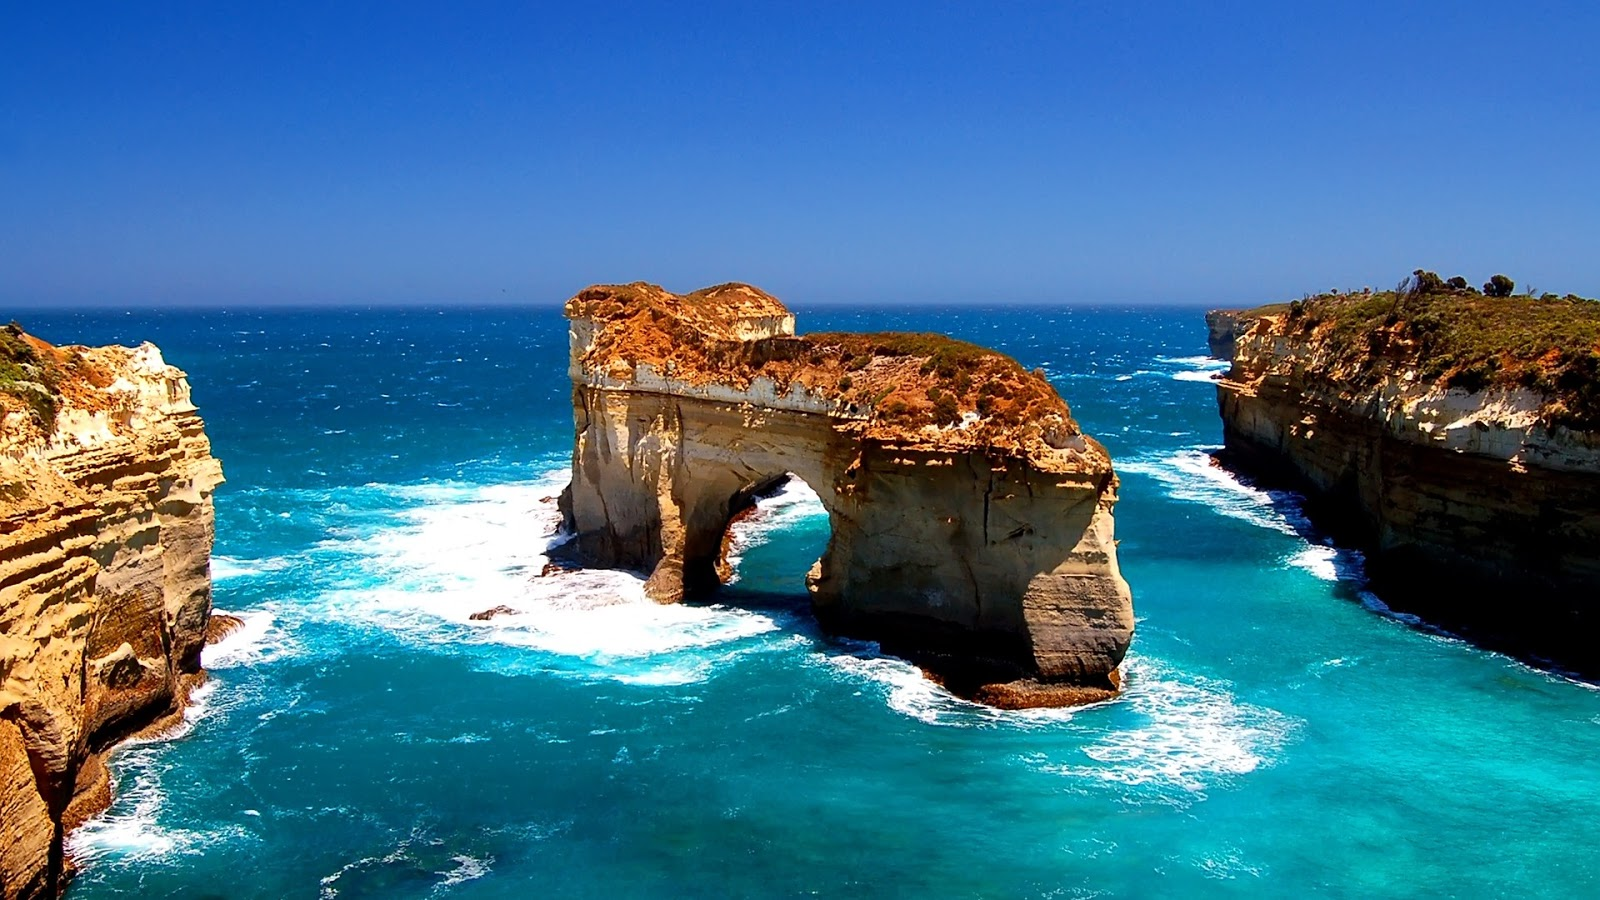 Wallpapers World: Island-archway-australia-hd-1080p-wallpapers-download